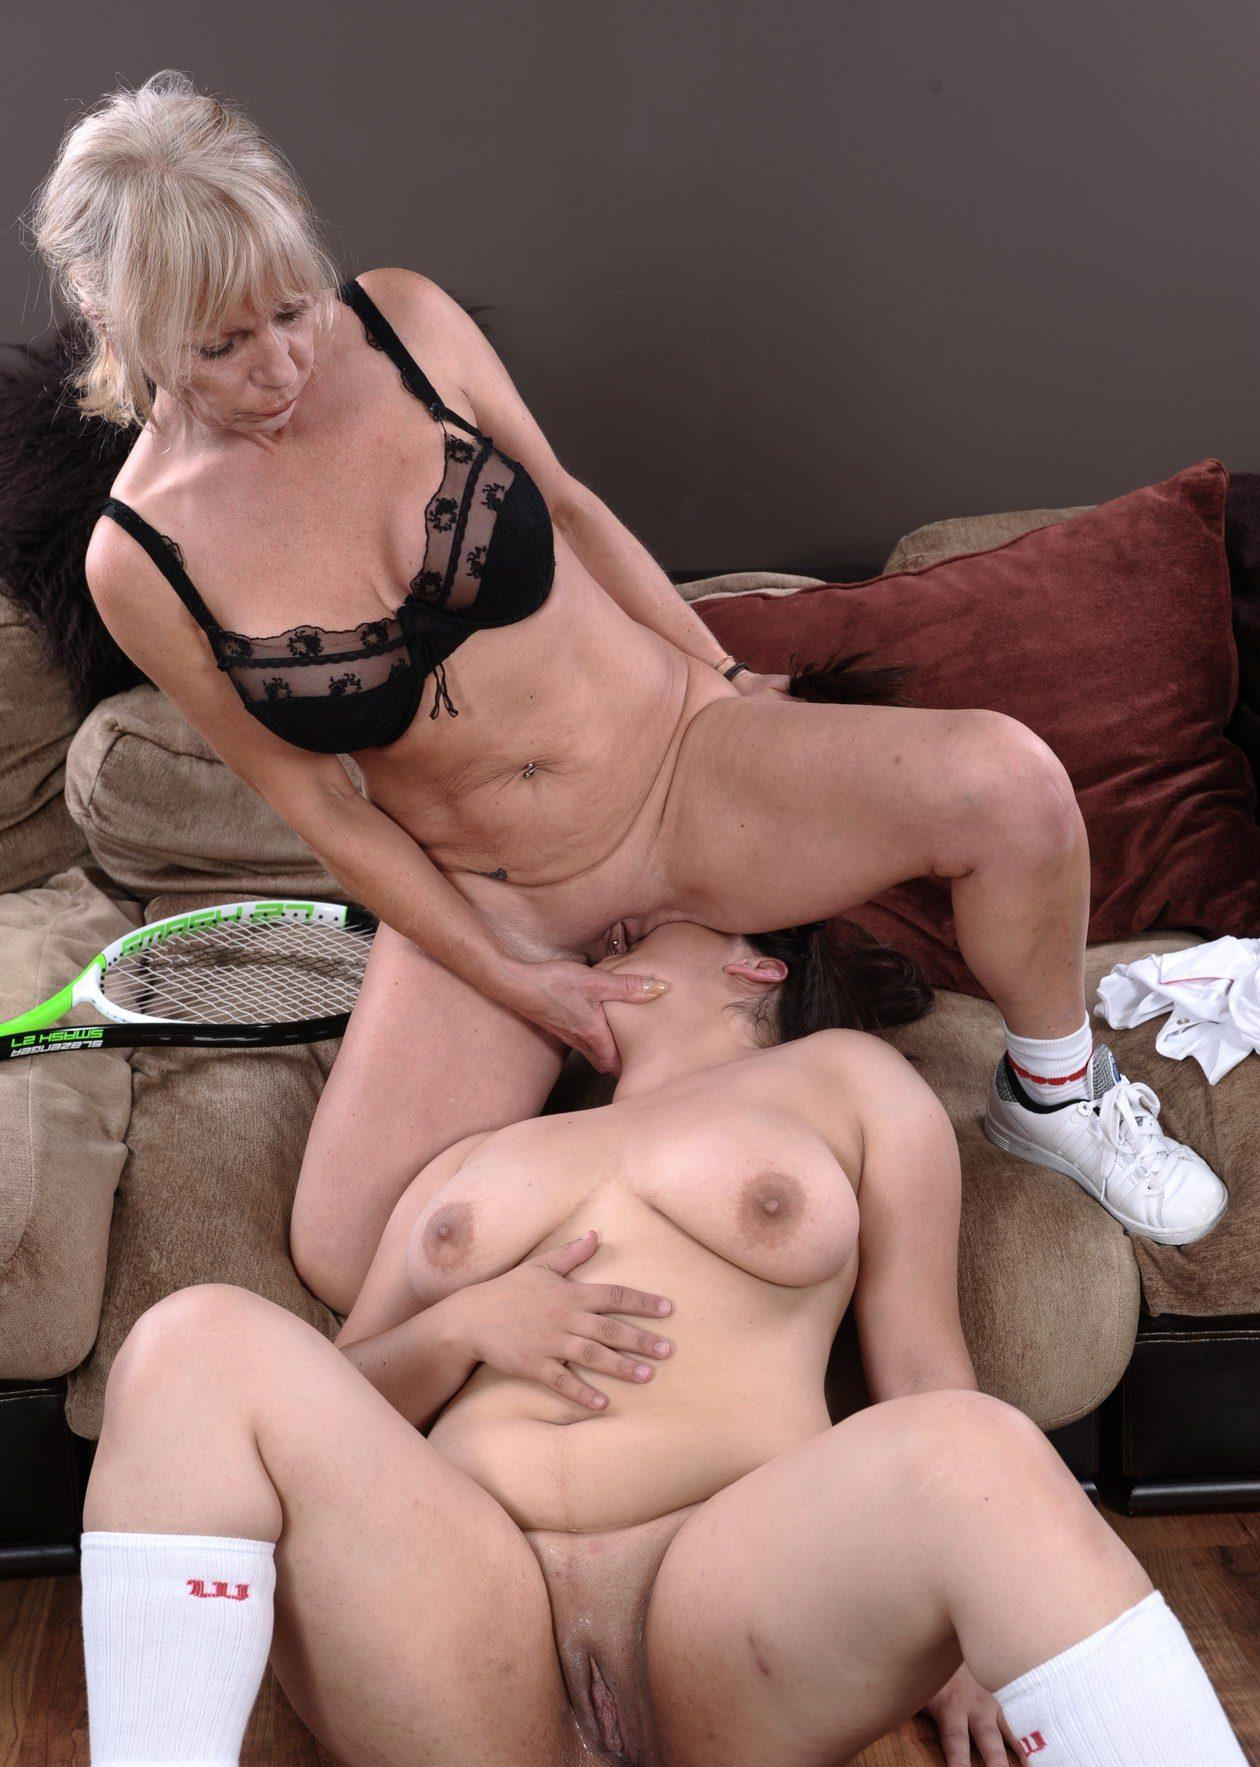 Audrey a LESBIAN OLDIE forcing her stepdaughter to facesitting and cunnilingus